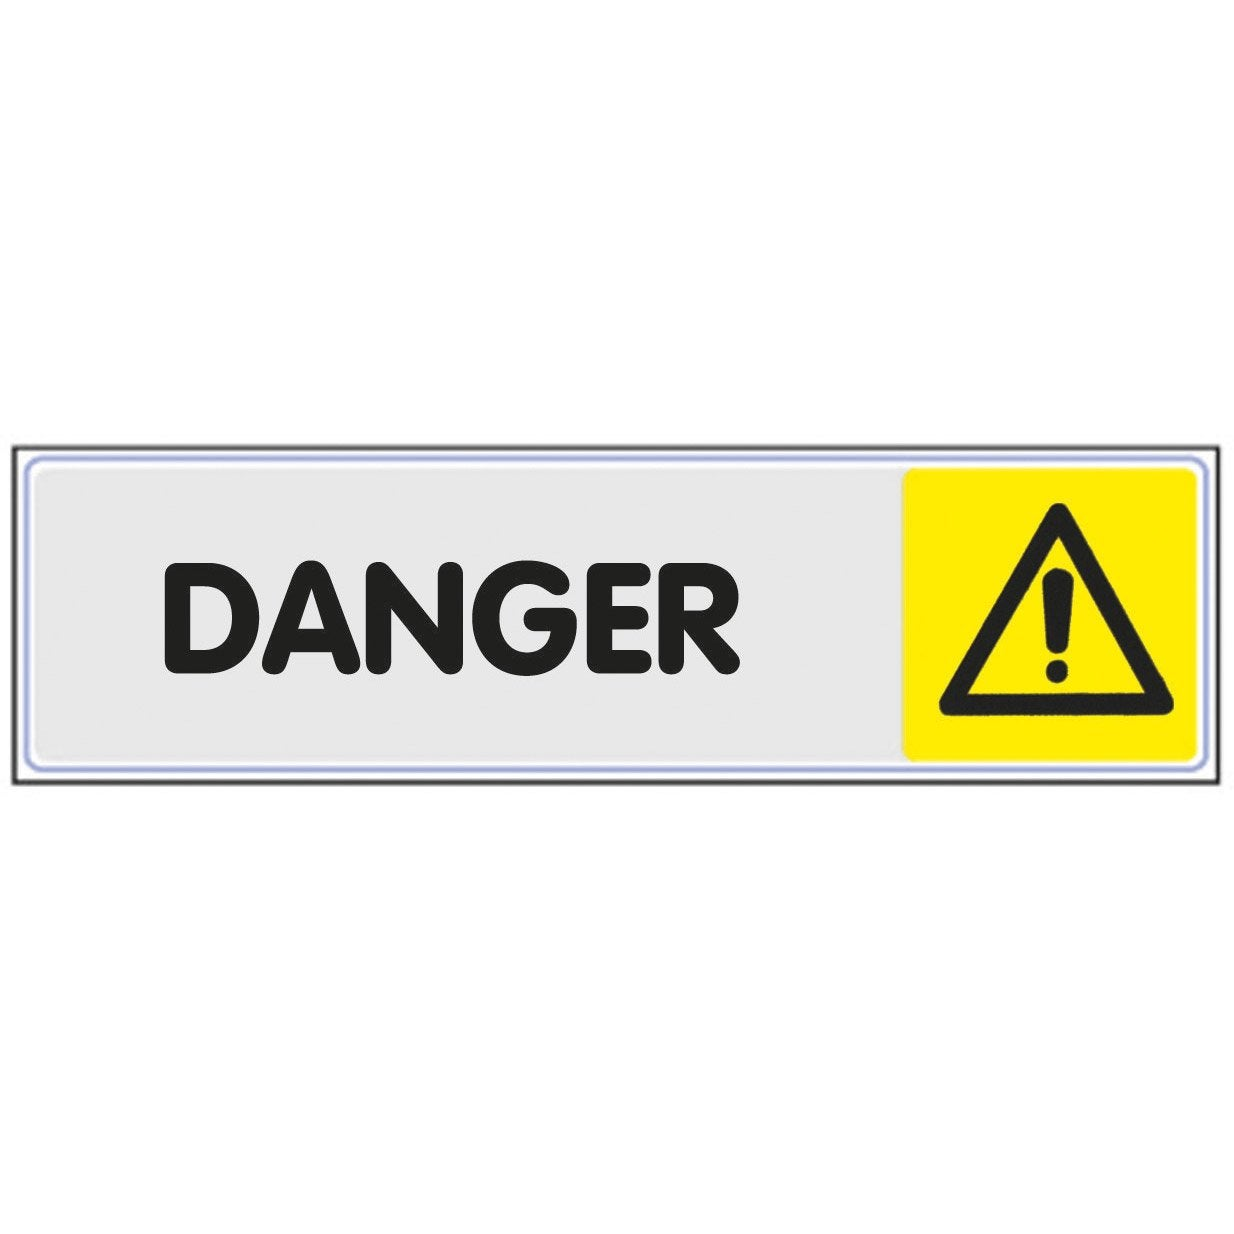 Plaque plexiglass danger en plastique leroy merlin - Leroy merlin plexiglass ...